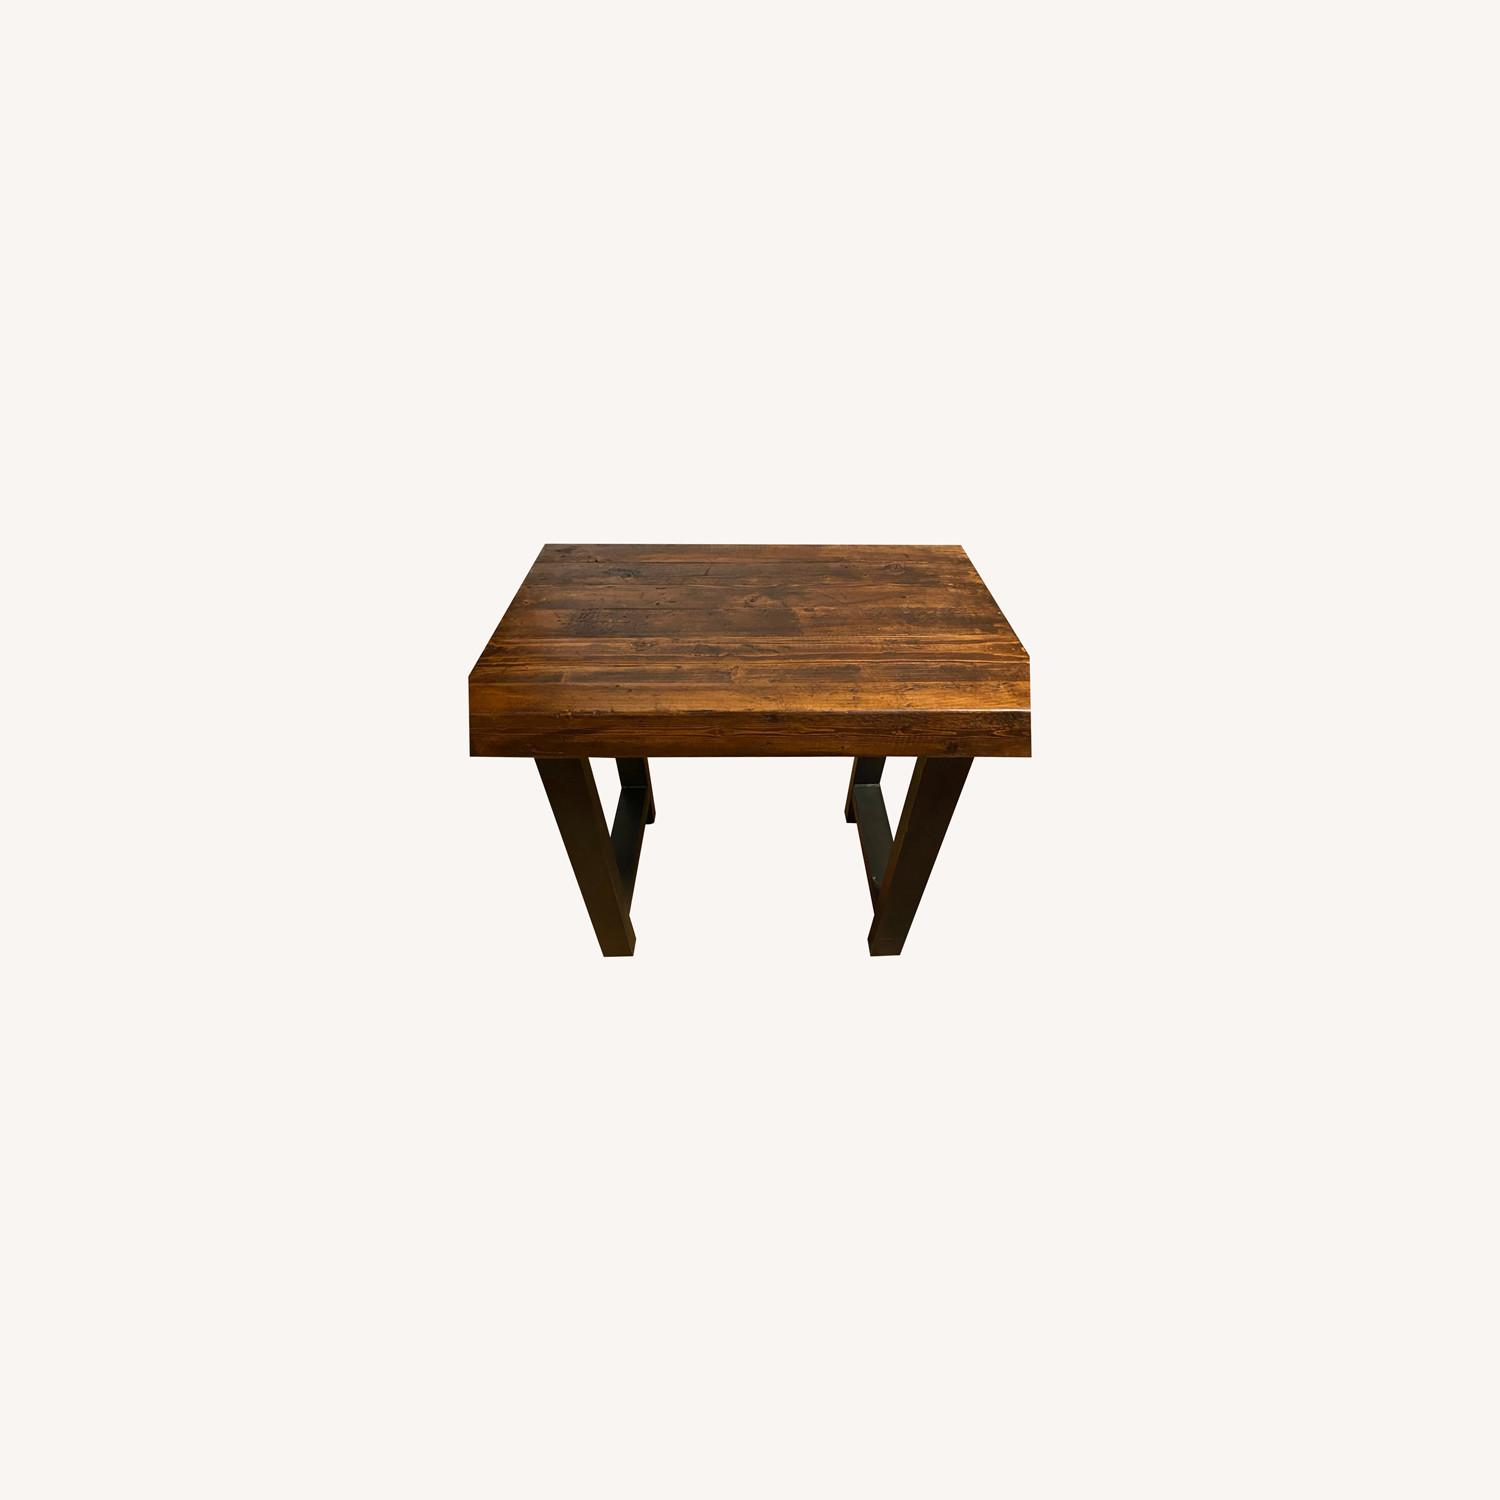 Pottery Barn Griffin Side Tables (x2) - image-0